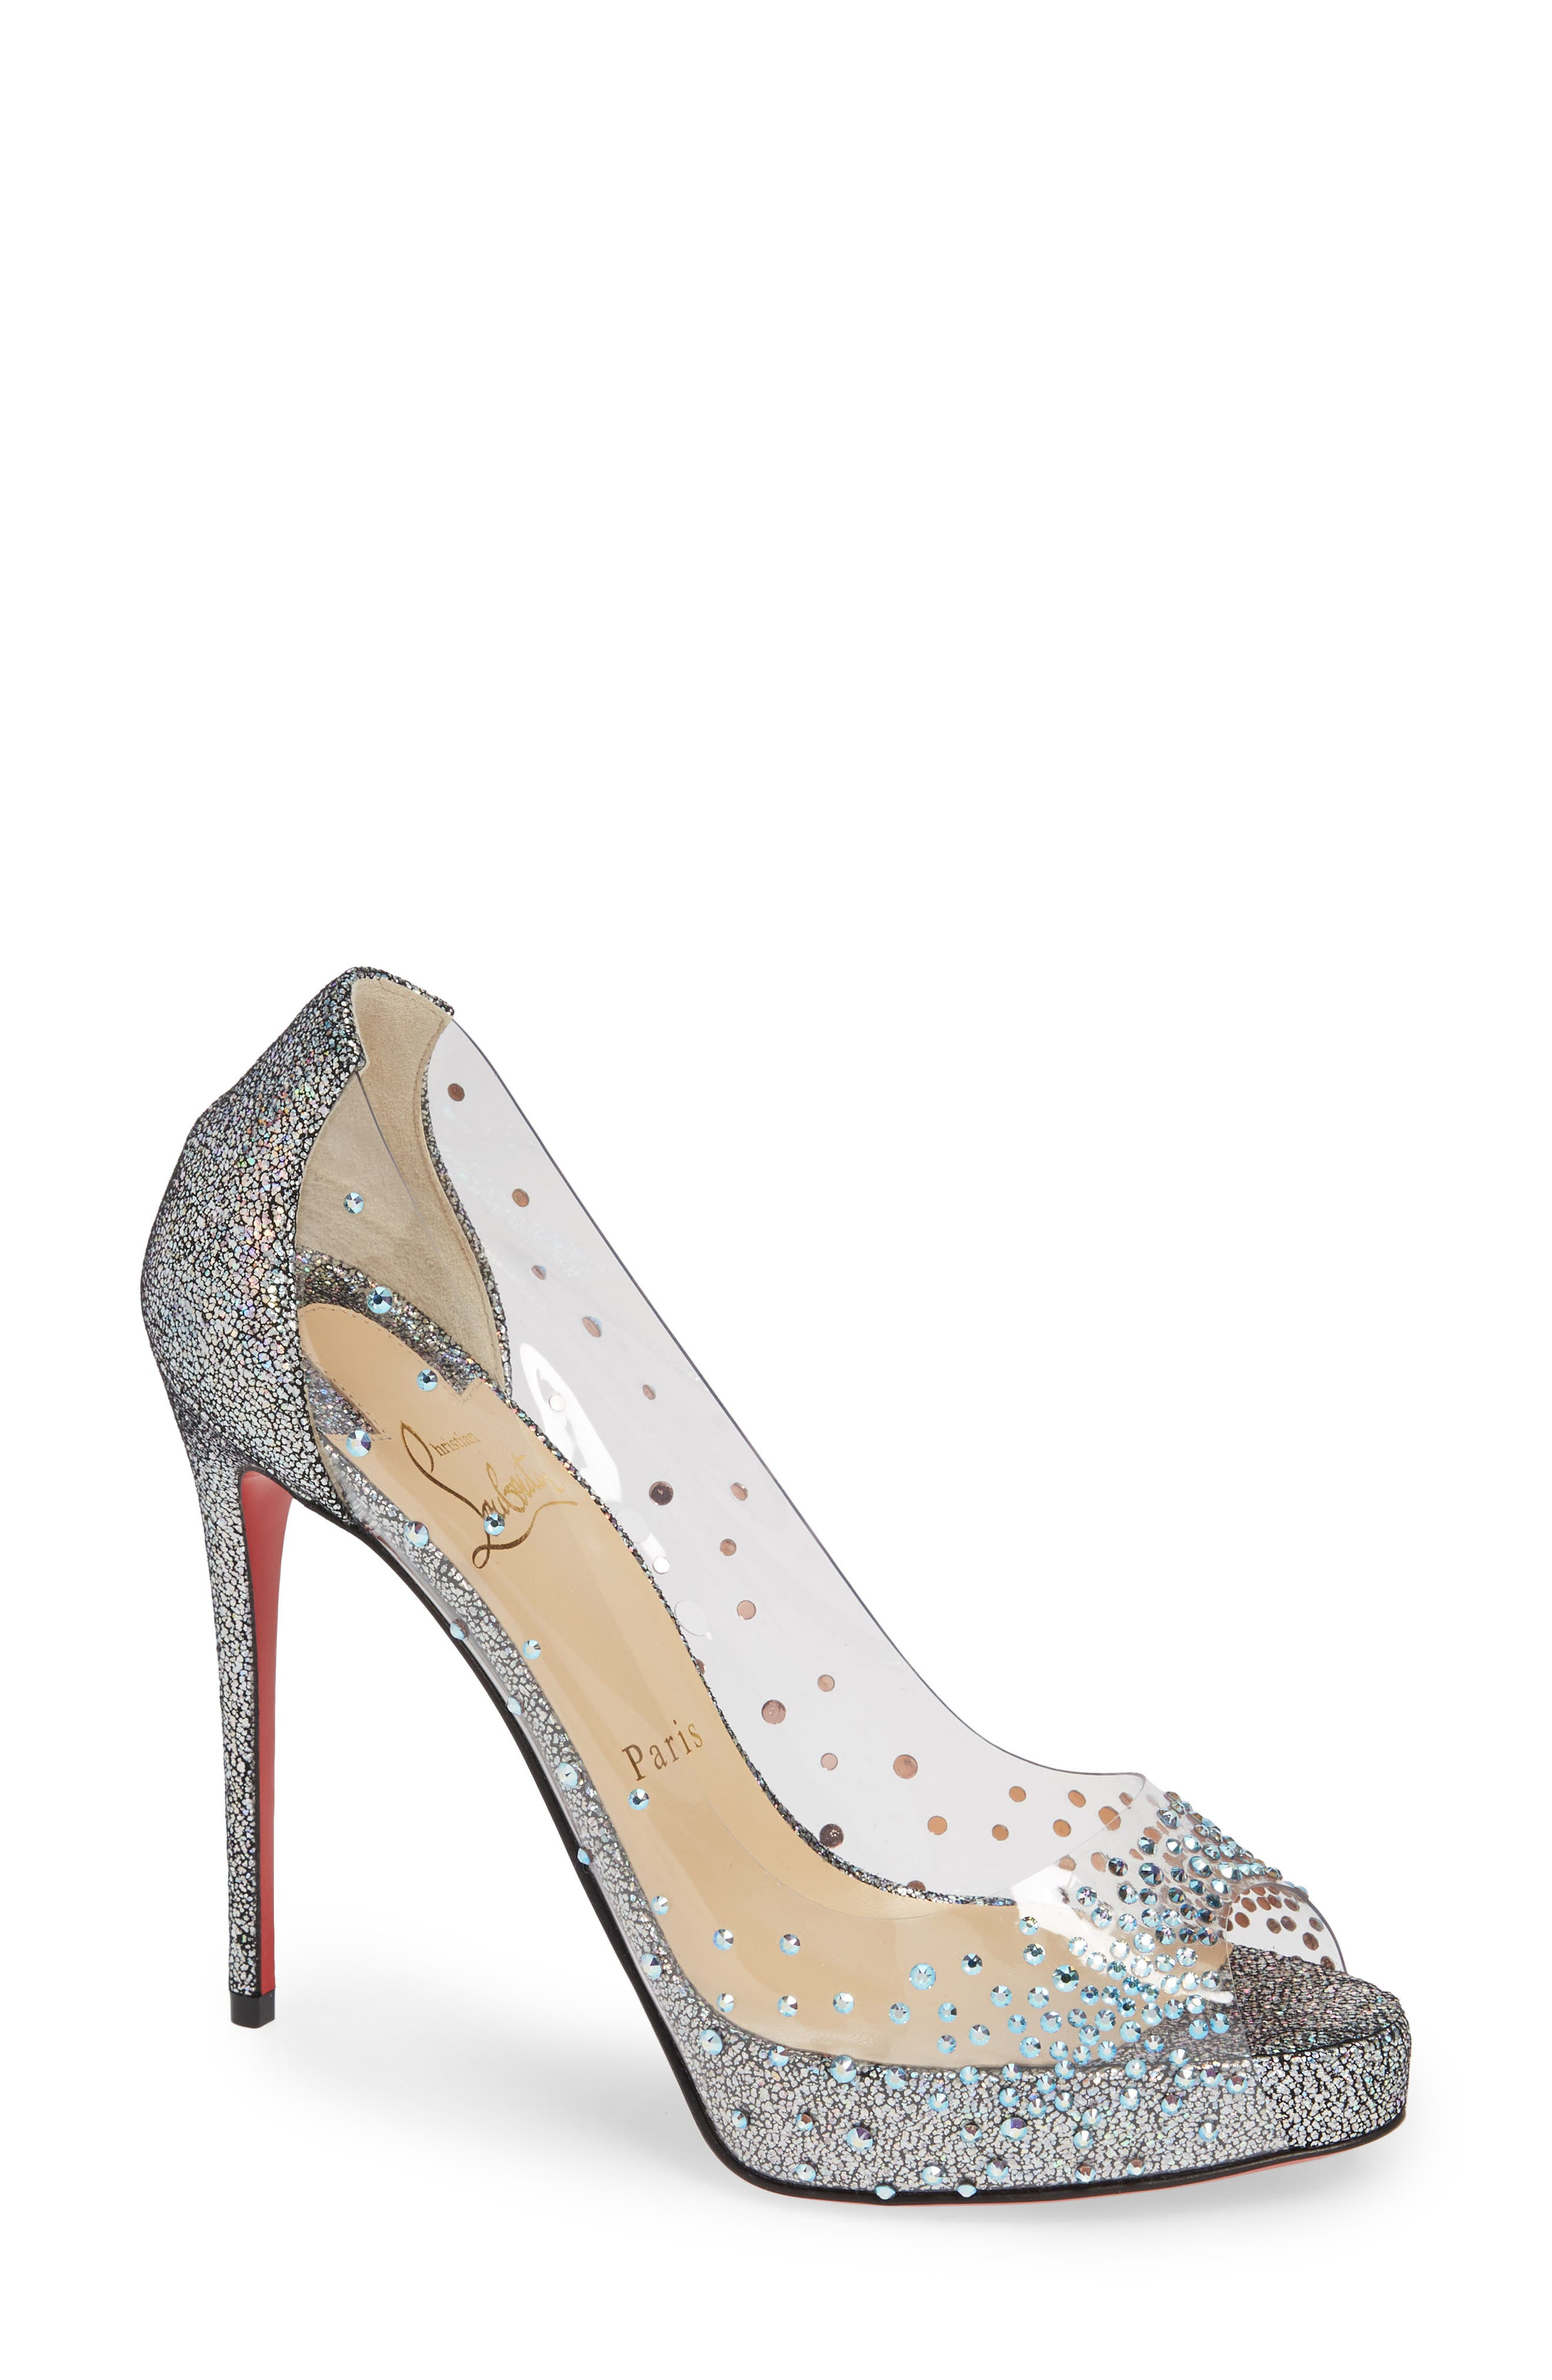 CHRISTIAN LOUBOUTIN, Very Strass Embellished Peep Toe Pump, Main thumbnail 1, color, SILVER